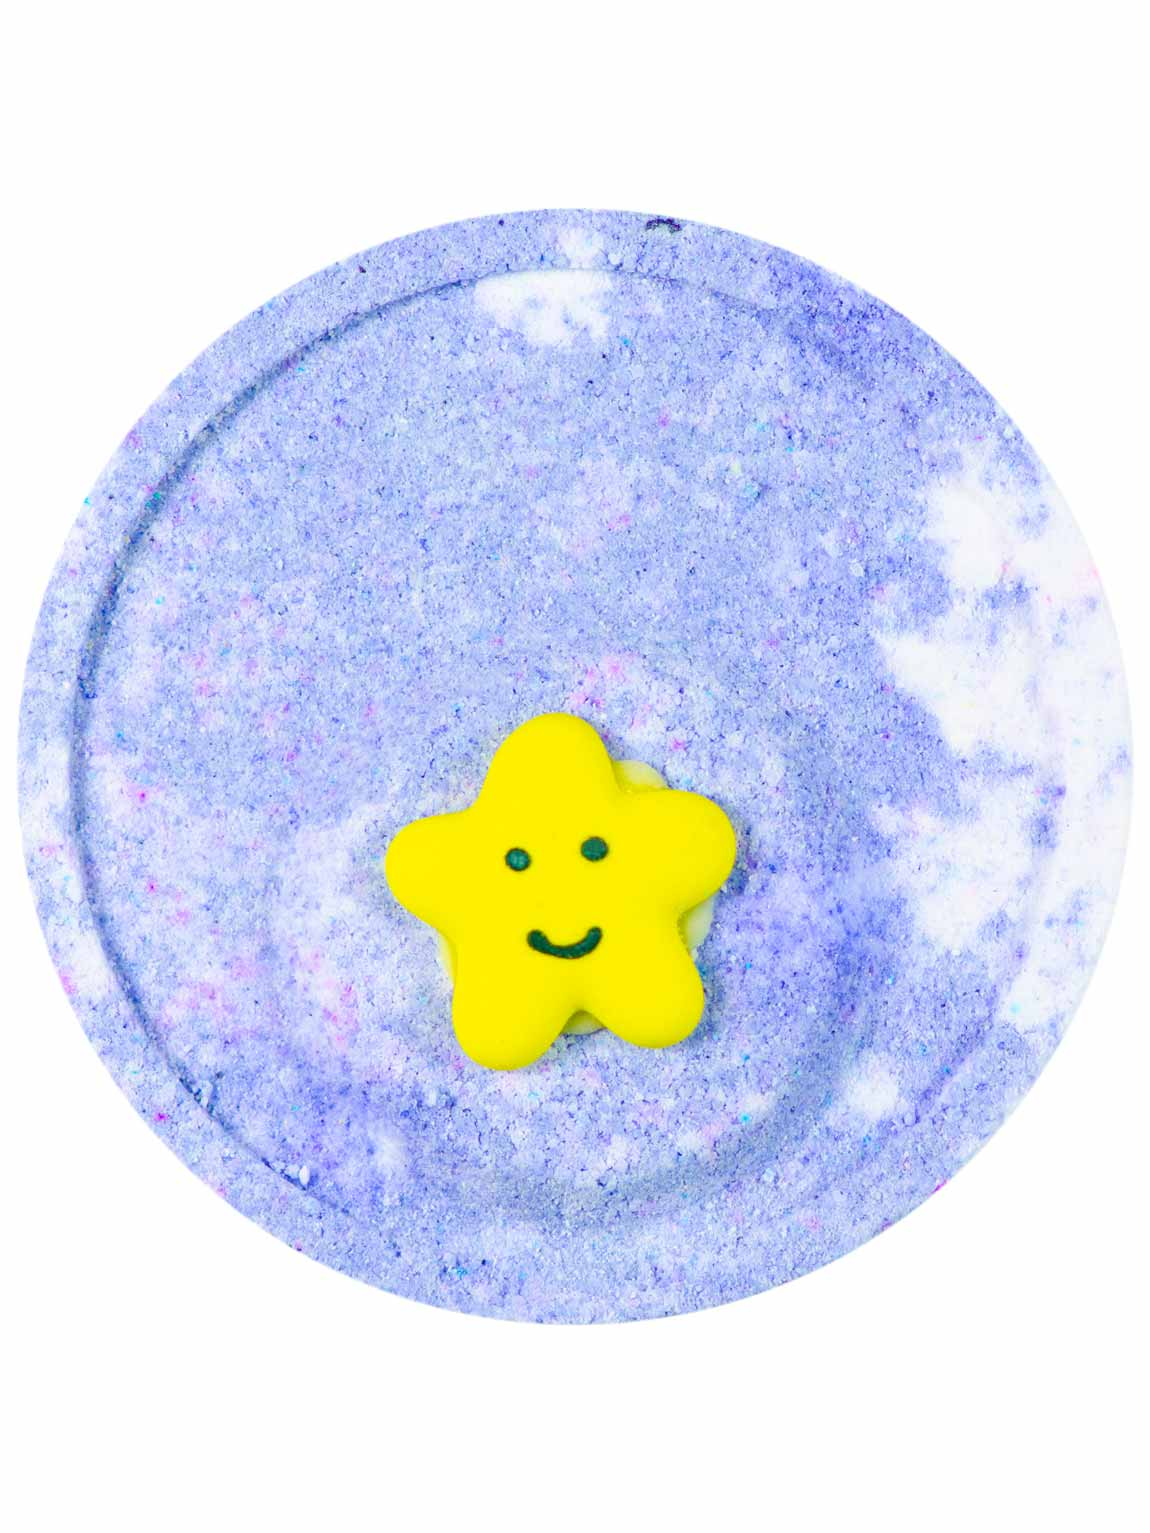 Sweet dreams bath bomb for kids from Cocobubble